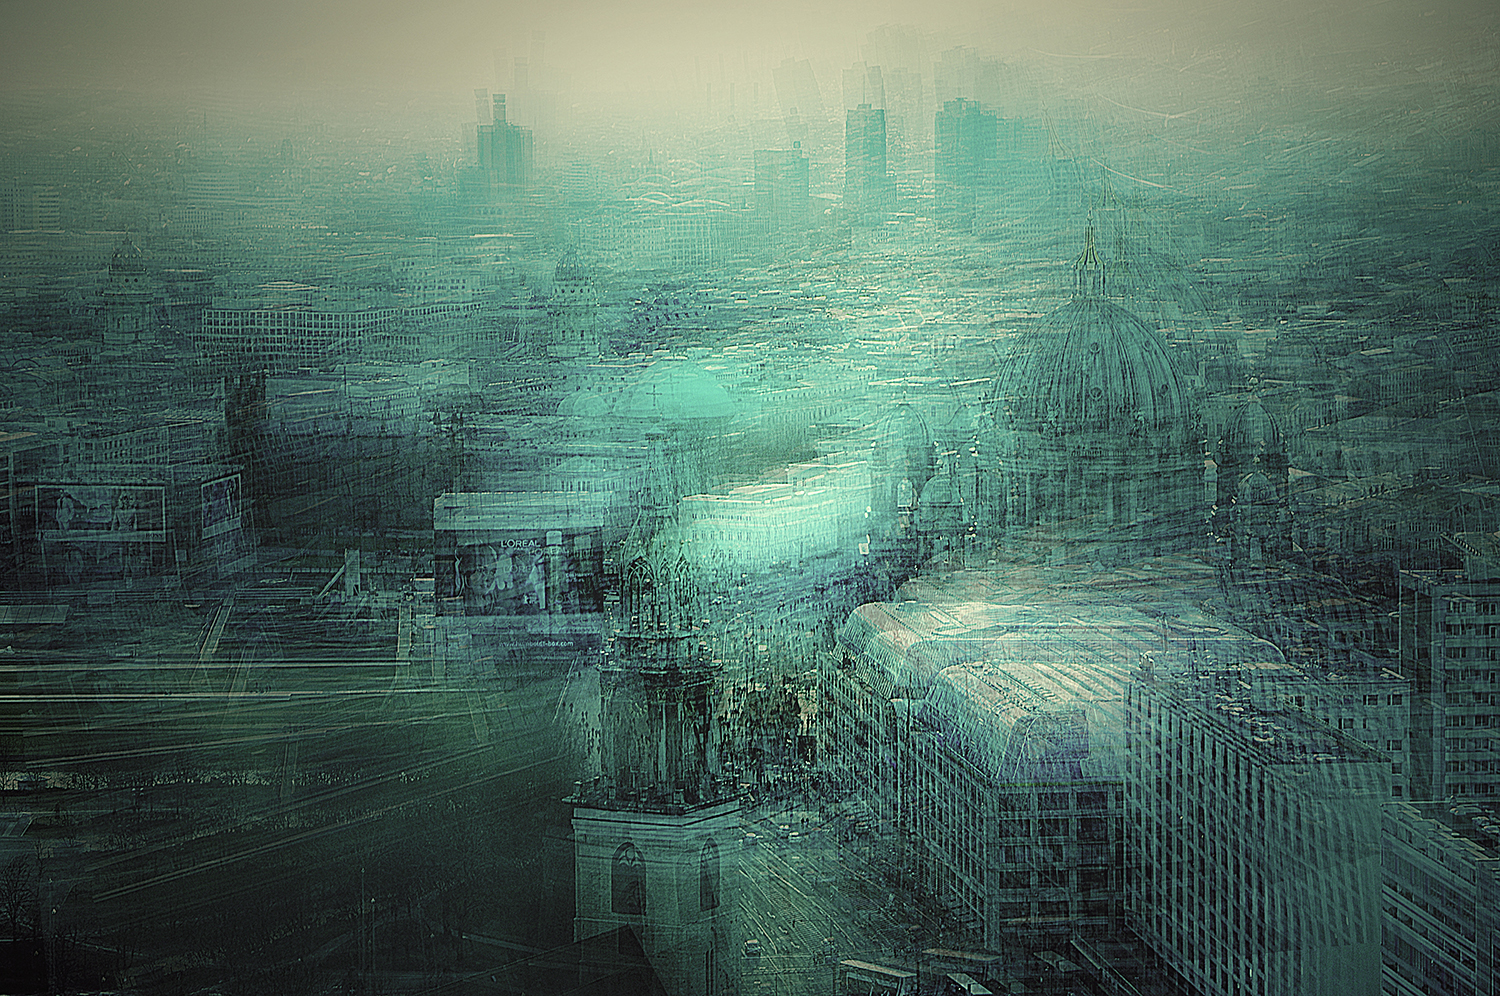 Berlin View   Stephanie Jung  6 x 9, Edition of 5, signed and numbered Archival pigment print